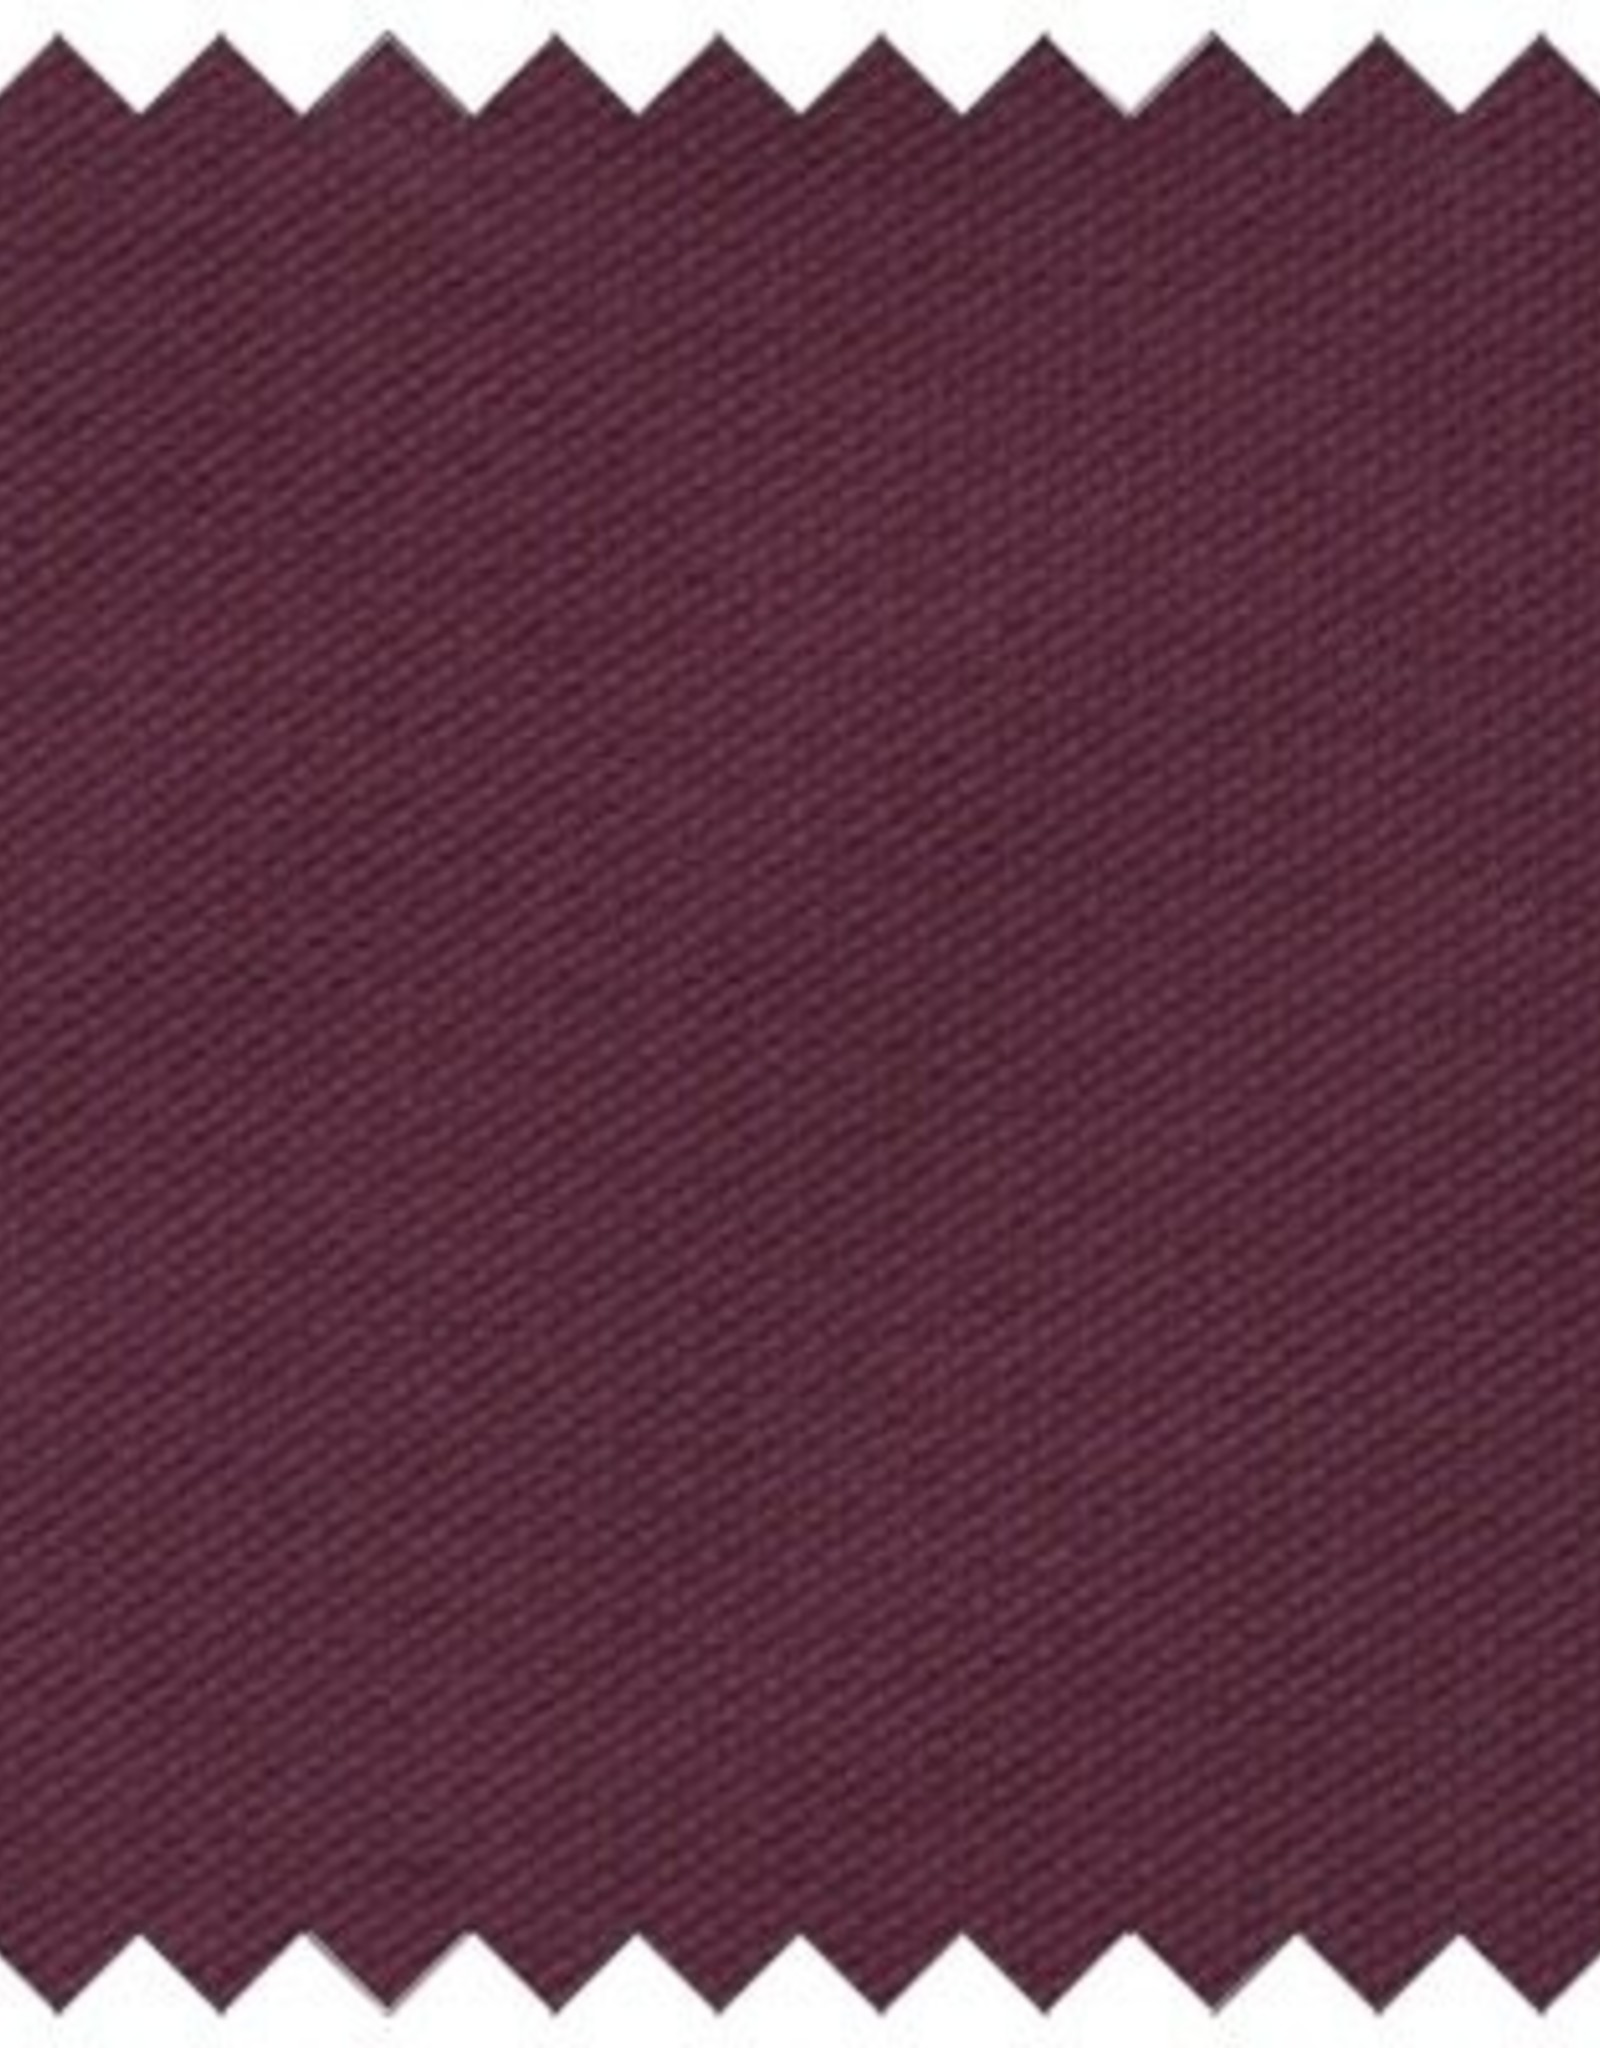 Carolina Morning Designs Rectangular Bolster - Organic Plum